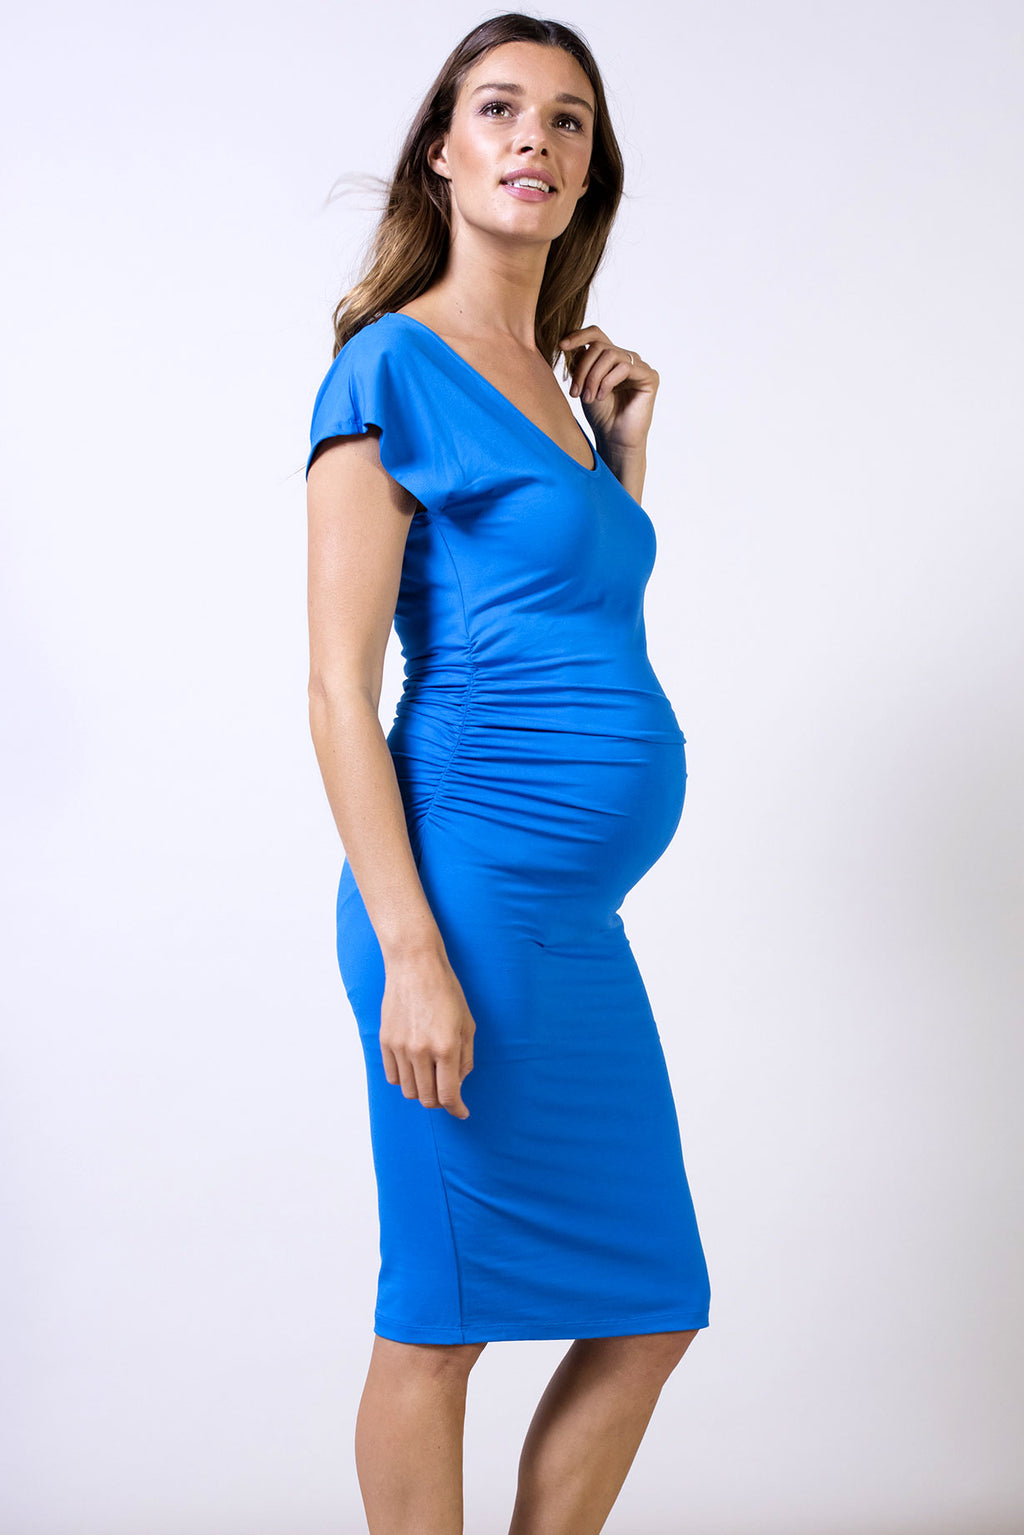 Isabella Oliver Balfour Maternity Dress - Seven Women Maternity